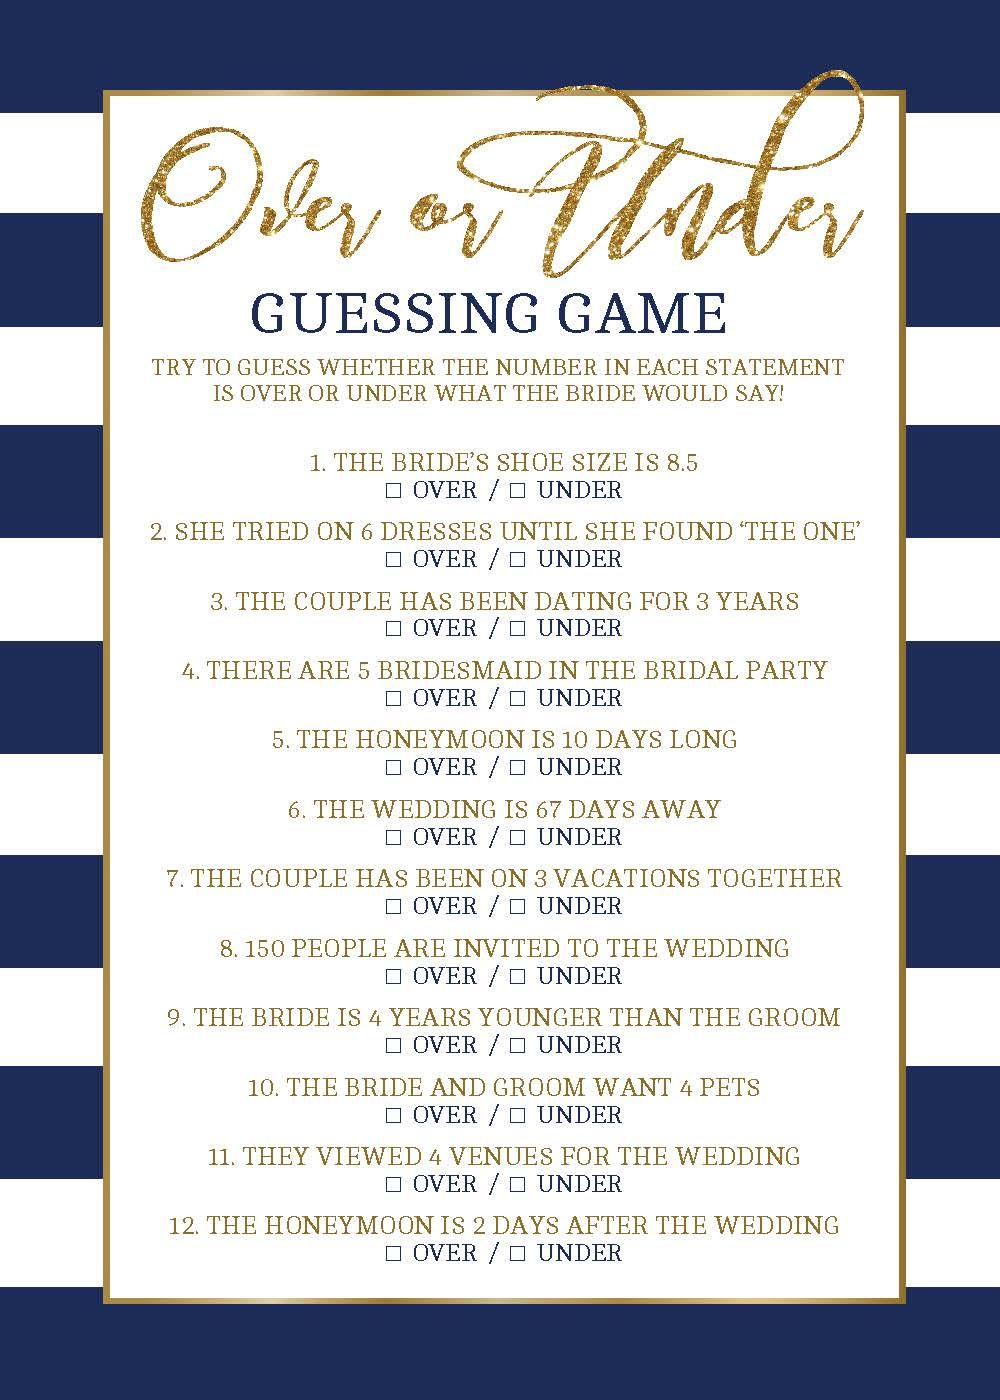 over or under bridal shower game wedding shower game bridal guessing game navy and gold bridal shower games